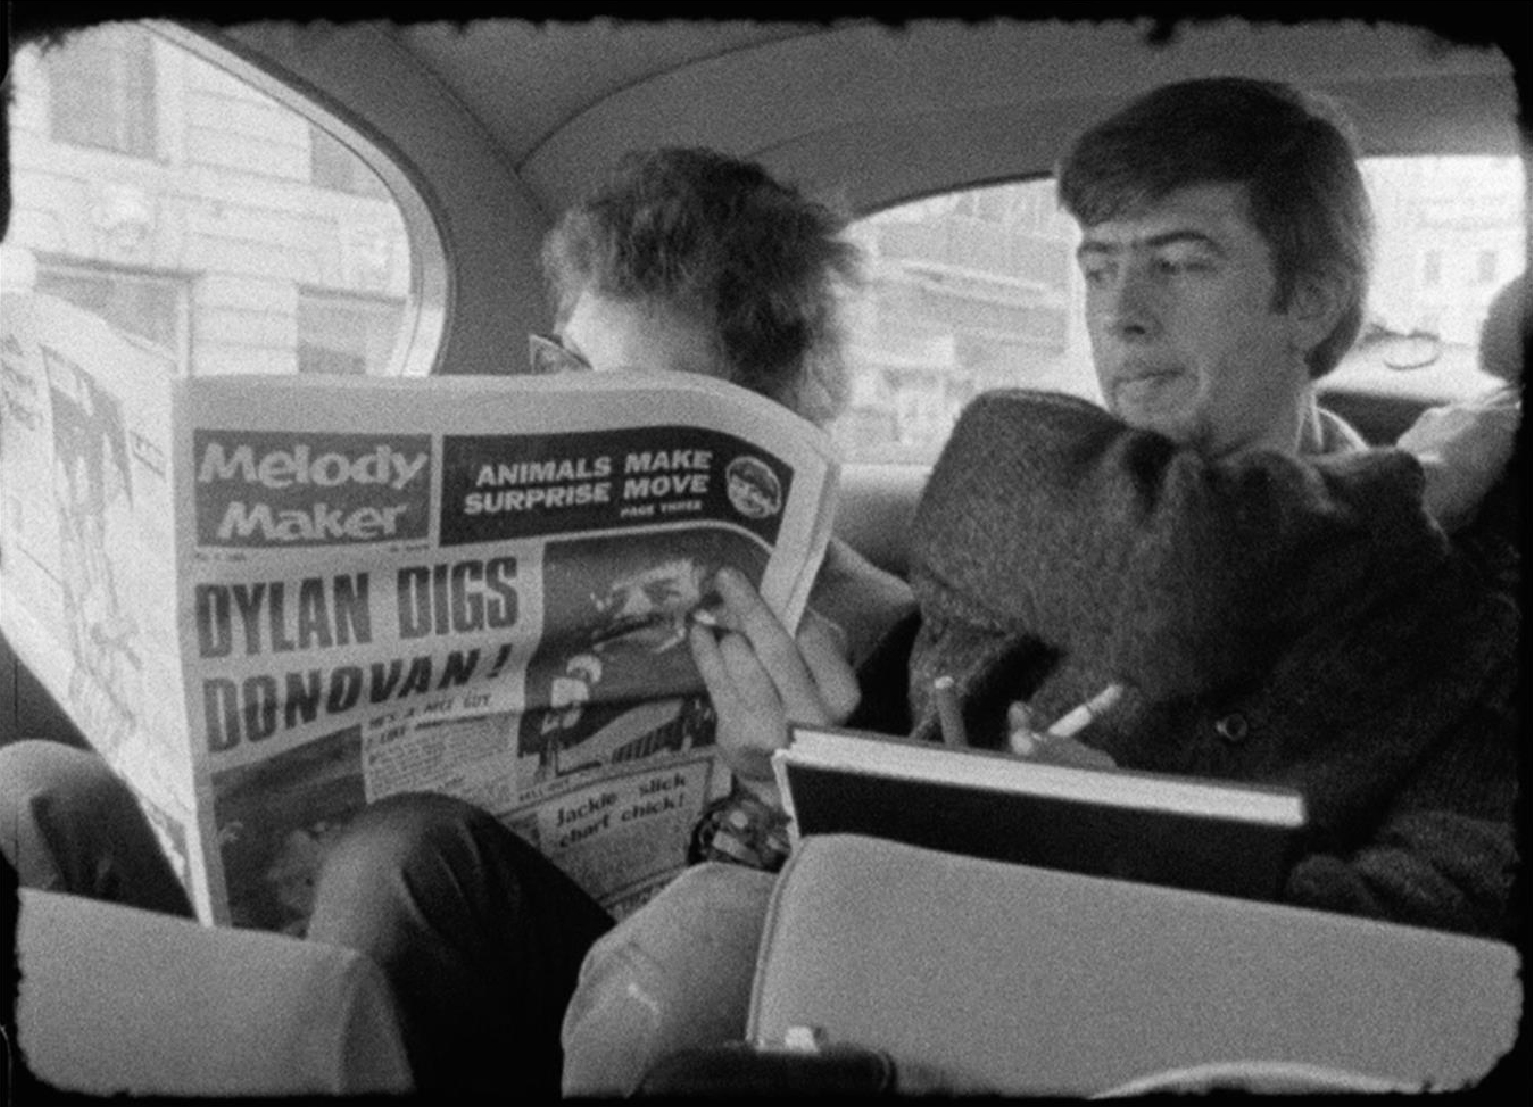 Bob Dylan reads Melody Maker, with John Mayall looking on, in London, 1965.